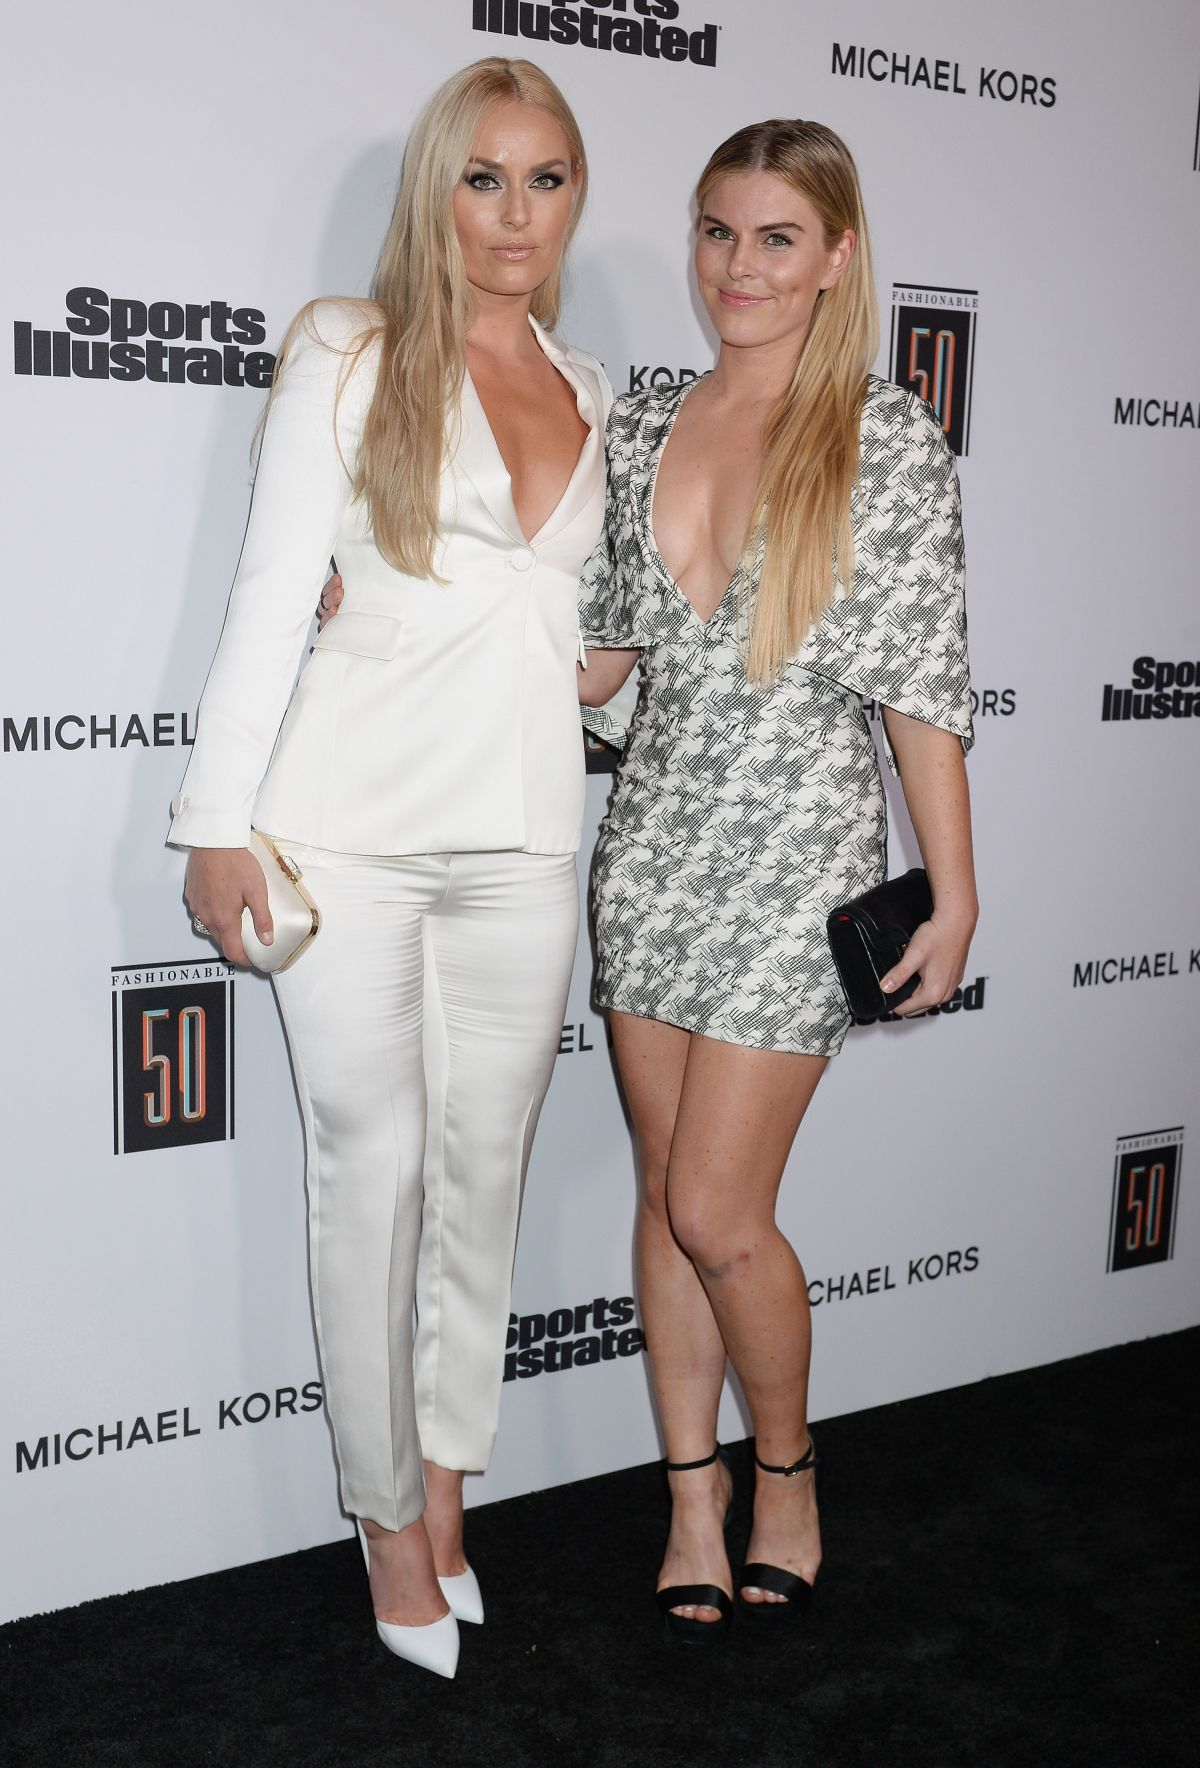 lindsey vonn at sports illustrated 2017 fashionable 50